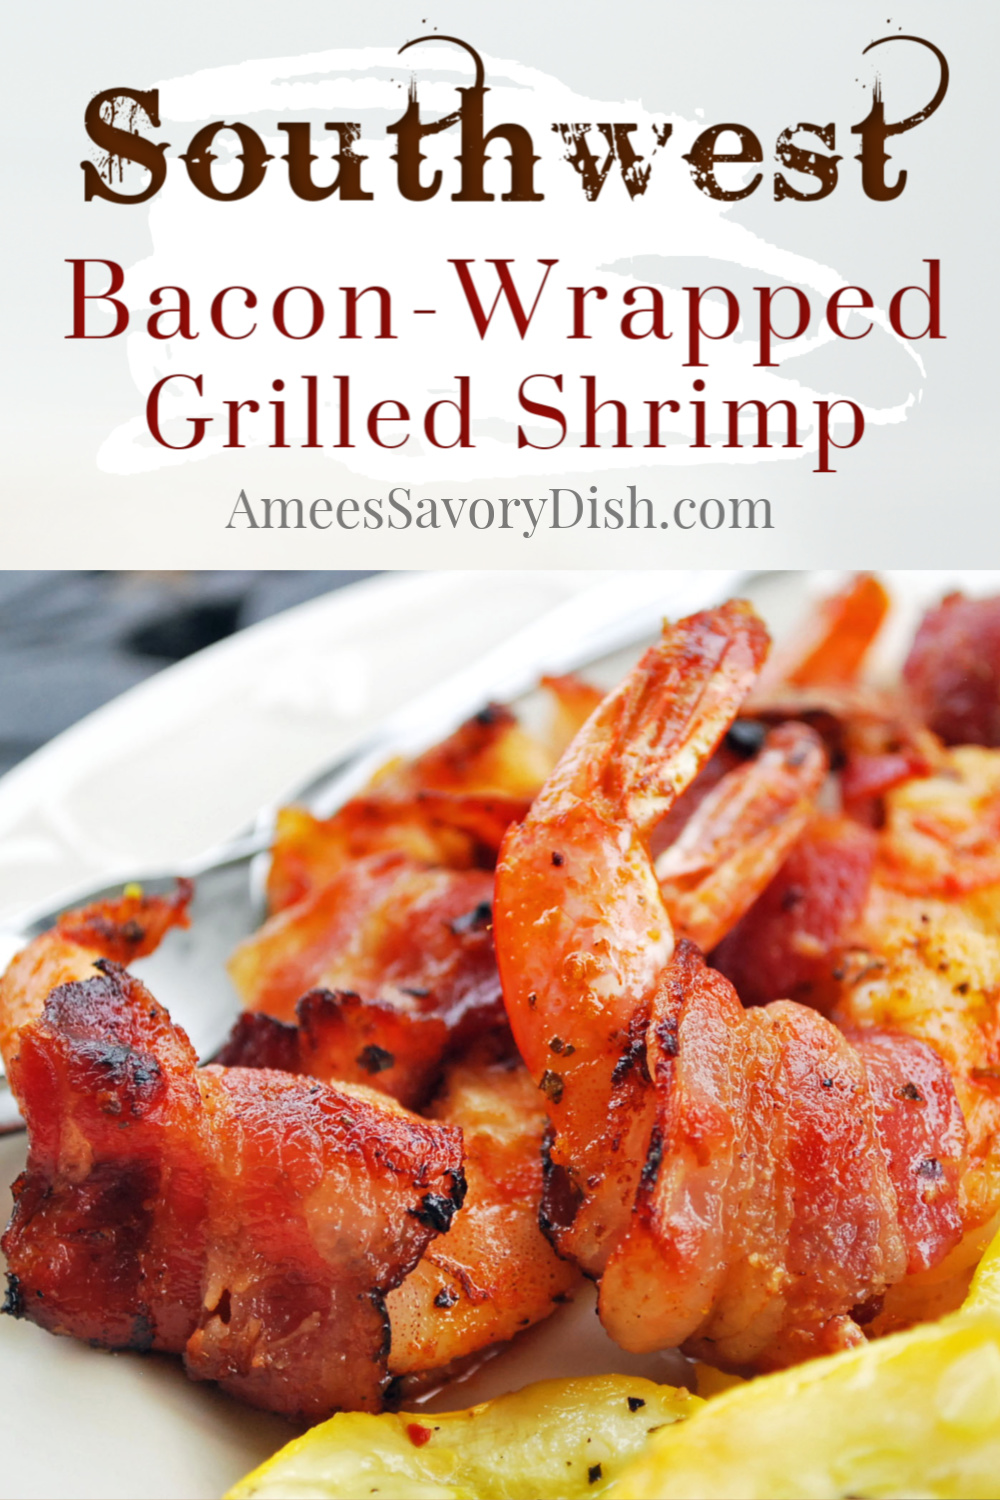 Southwest bacon-wrapped grilled shrimp is SO flavorful and simple to make! The perfect summer grilling recipe that's and gluten-free, low-carb, keto diet-friendly and crazy delicious. #grilledshrimp #southwestshrimp #shrimprecipe via @Ameessavorydish